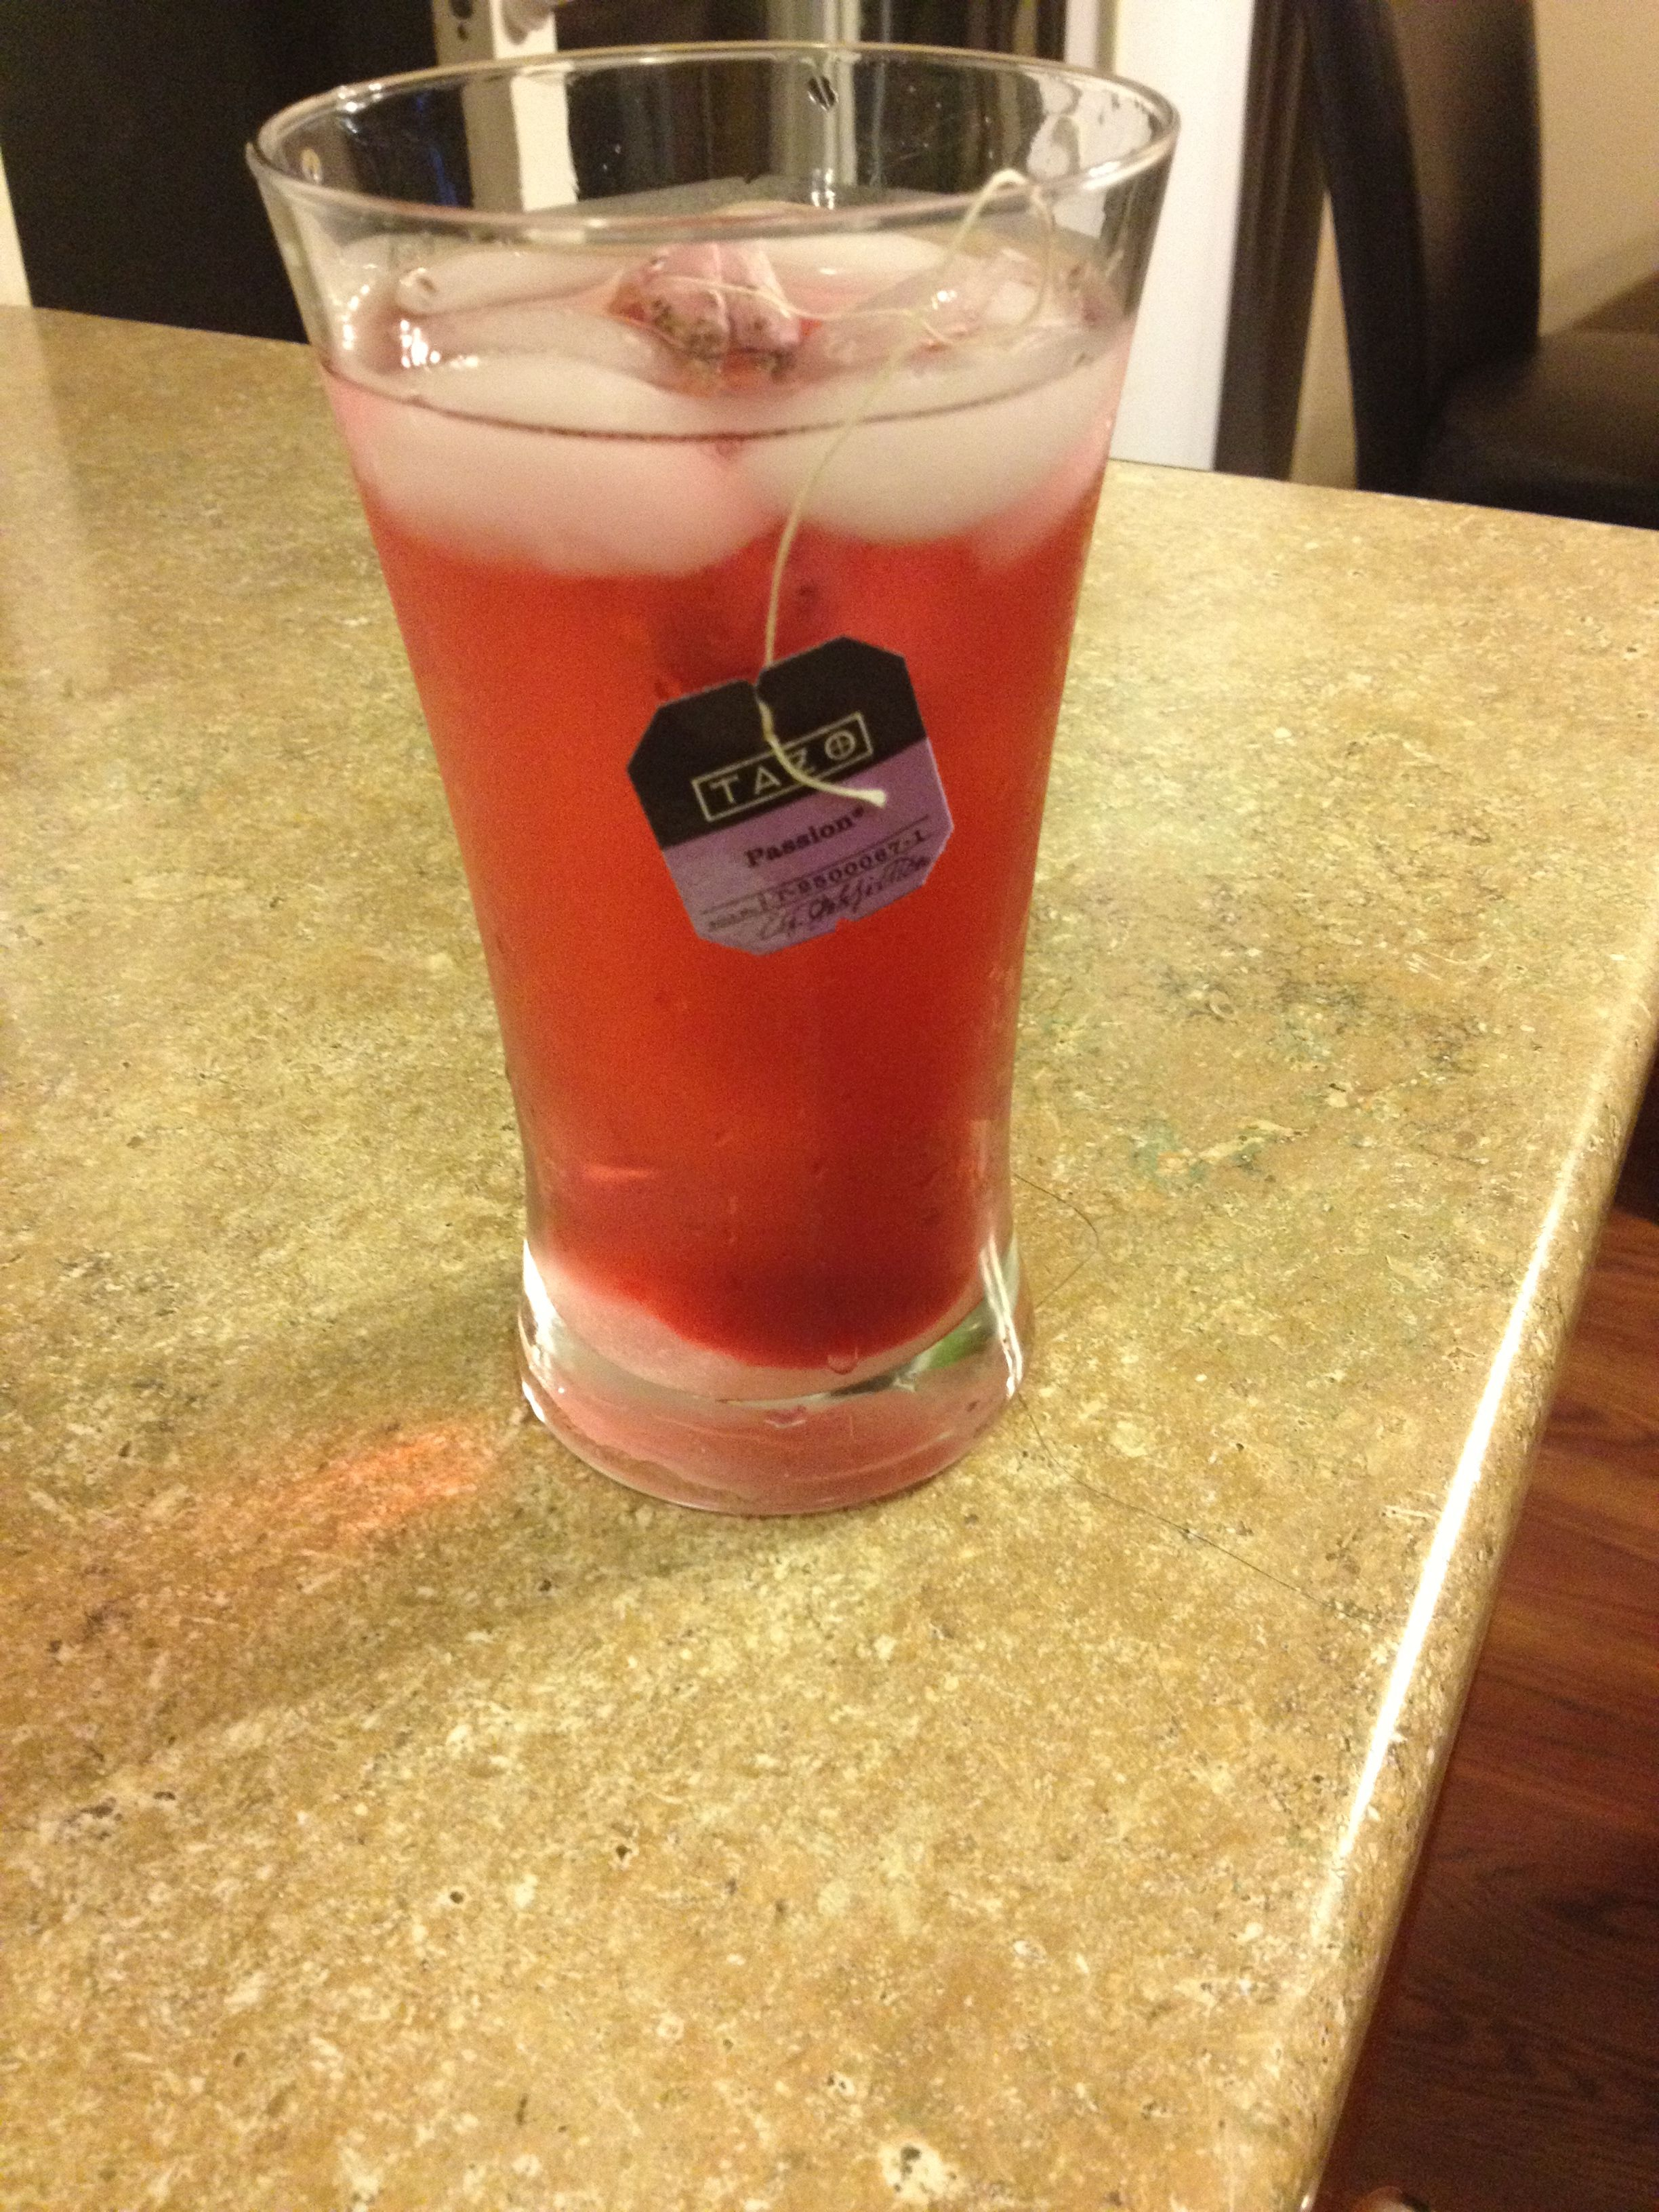 Starbucks passion tea at home. With three teaspoons of sugar! What an easy refresher:)